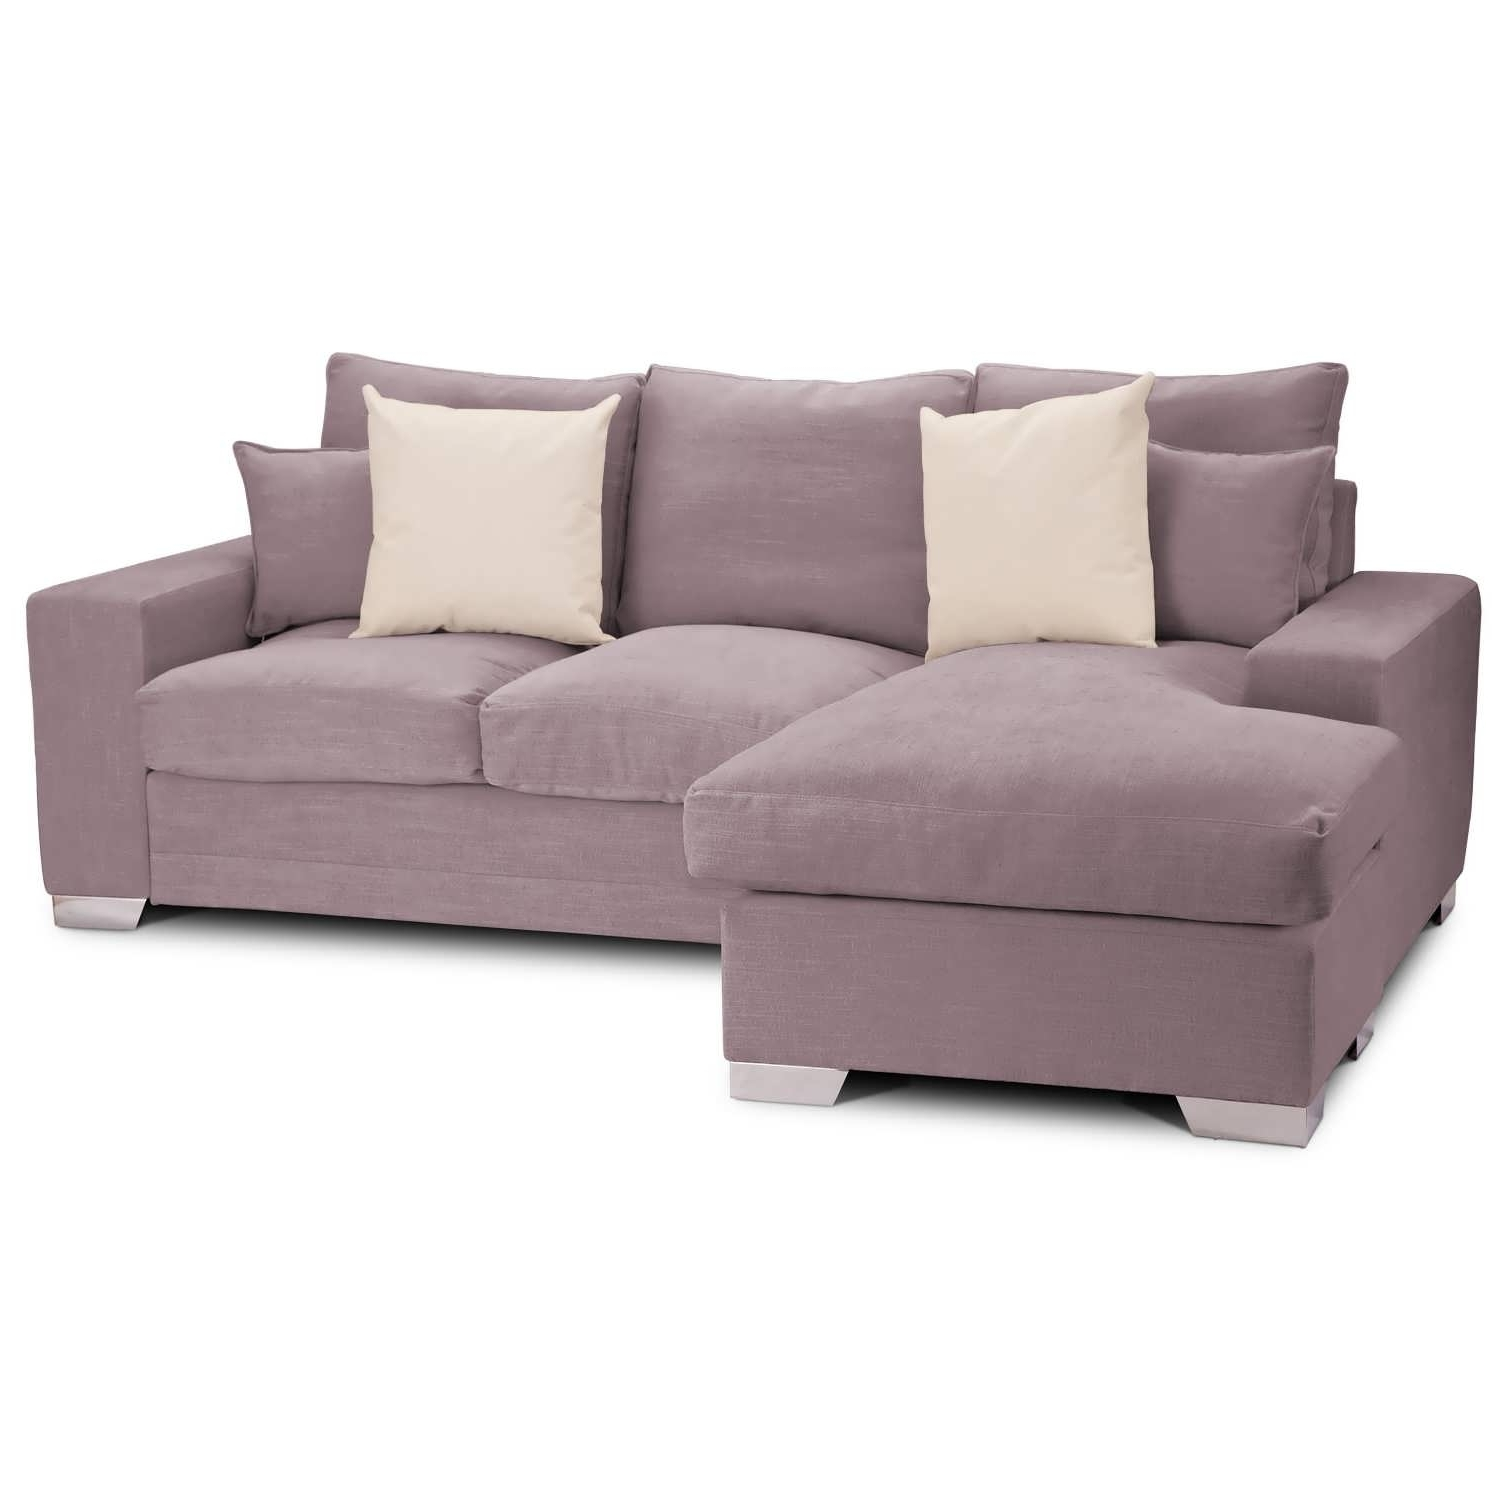 facing and wood dark in rounded left pin light hand couches section legs with chaise sofa grey fabric ole